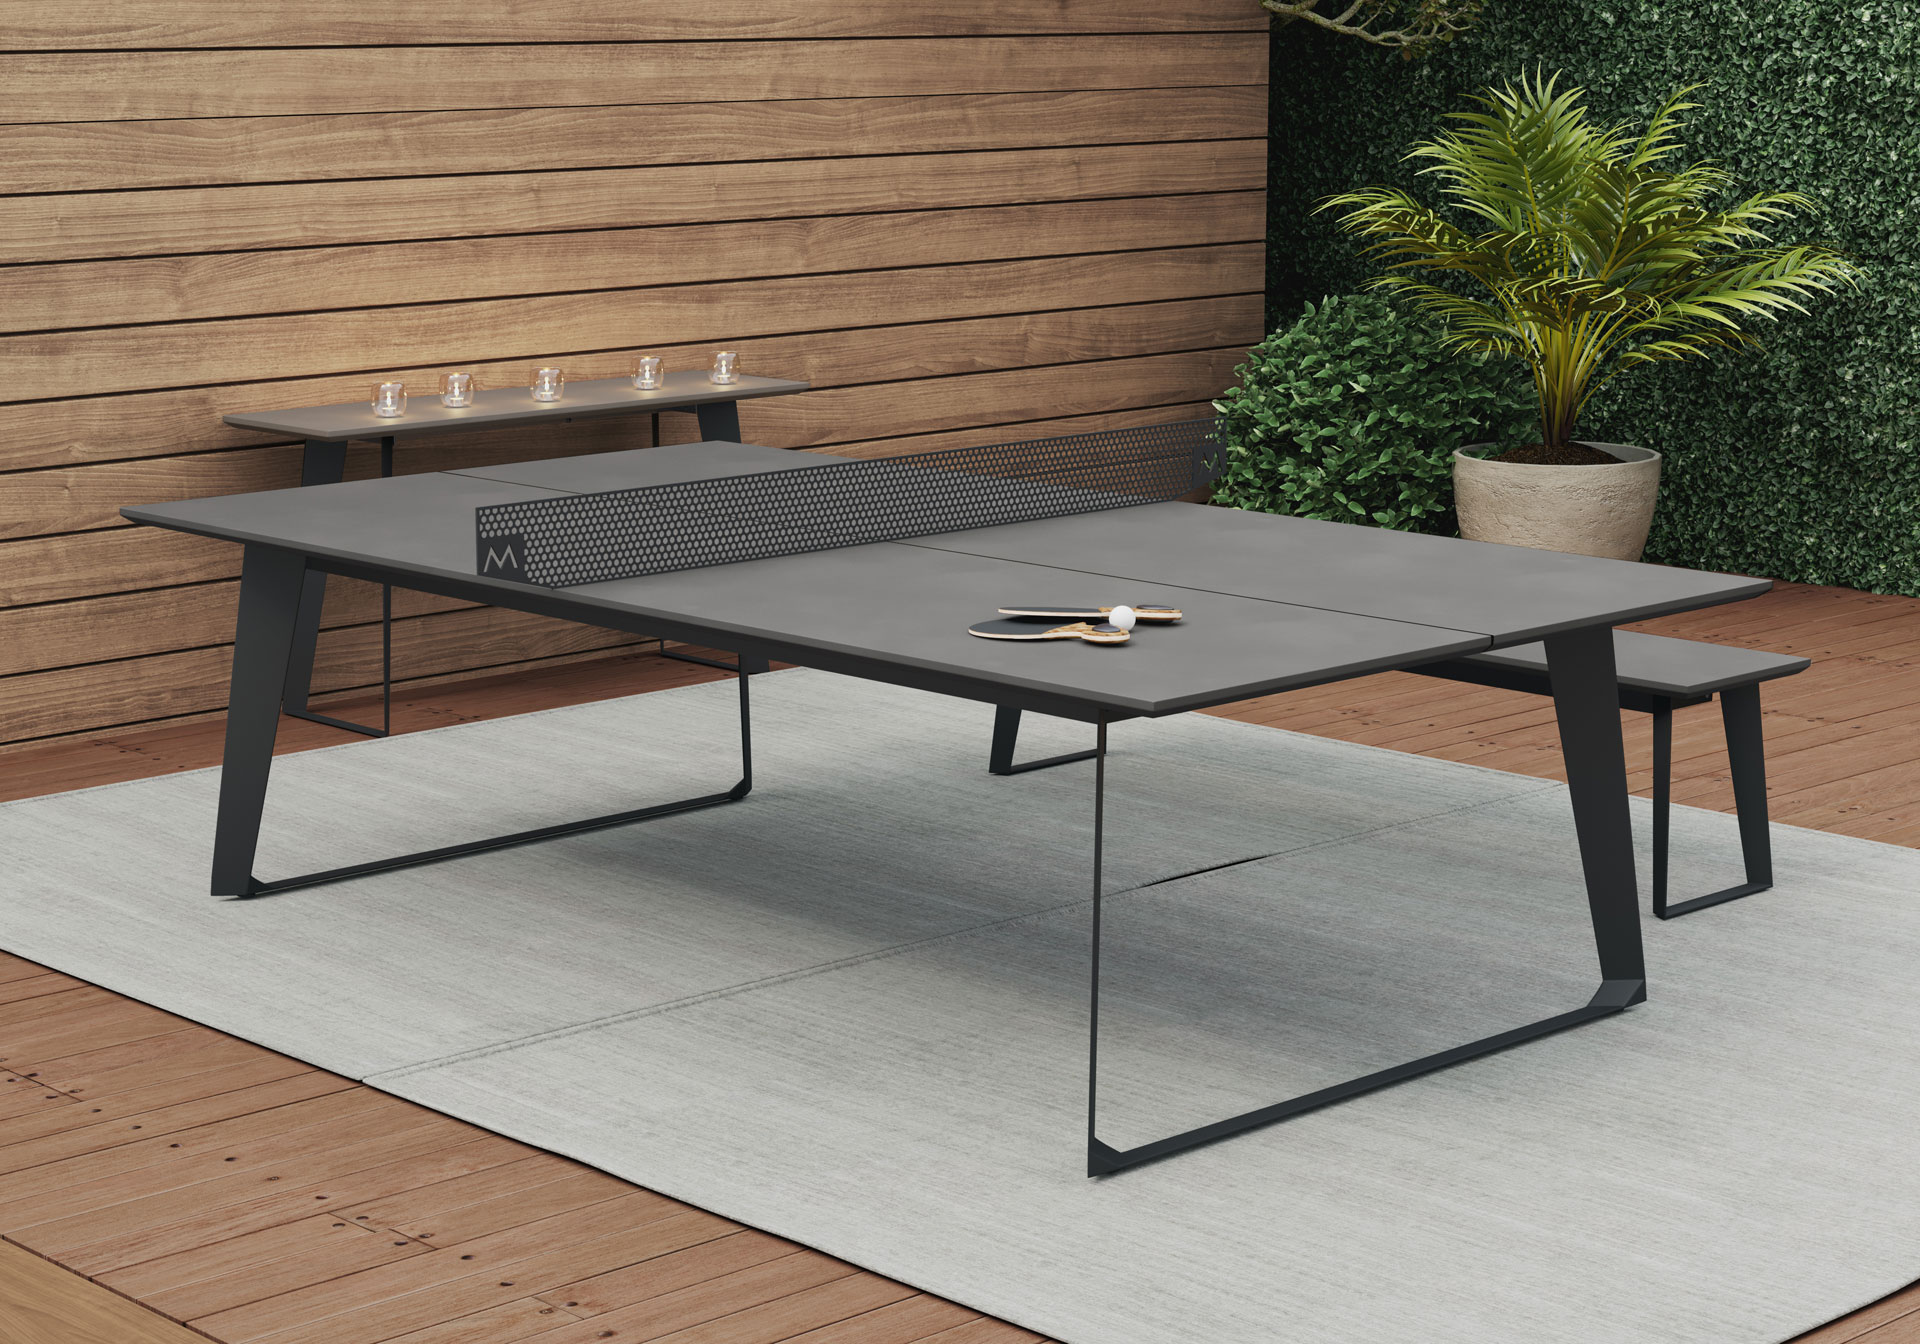 Modloft Amsterdam Outdoor Ping Pong Table DE GHT PPTBLC OD